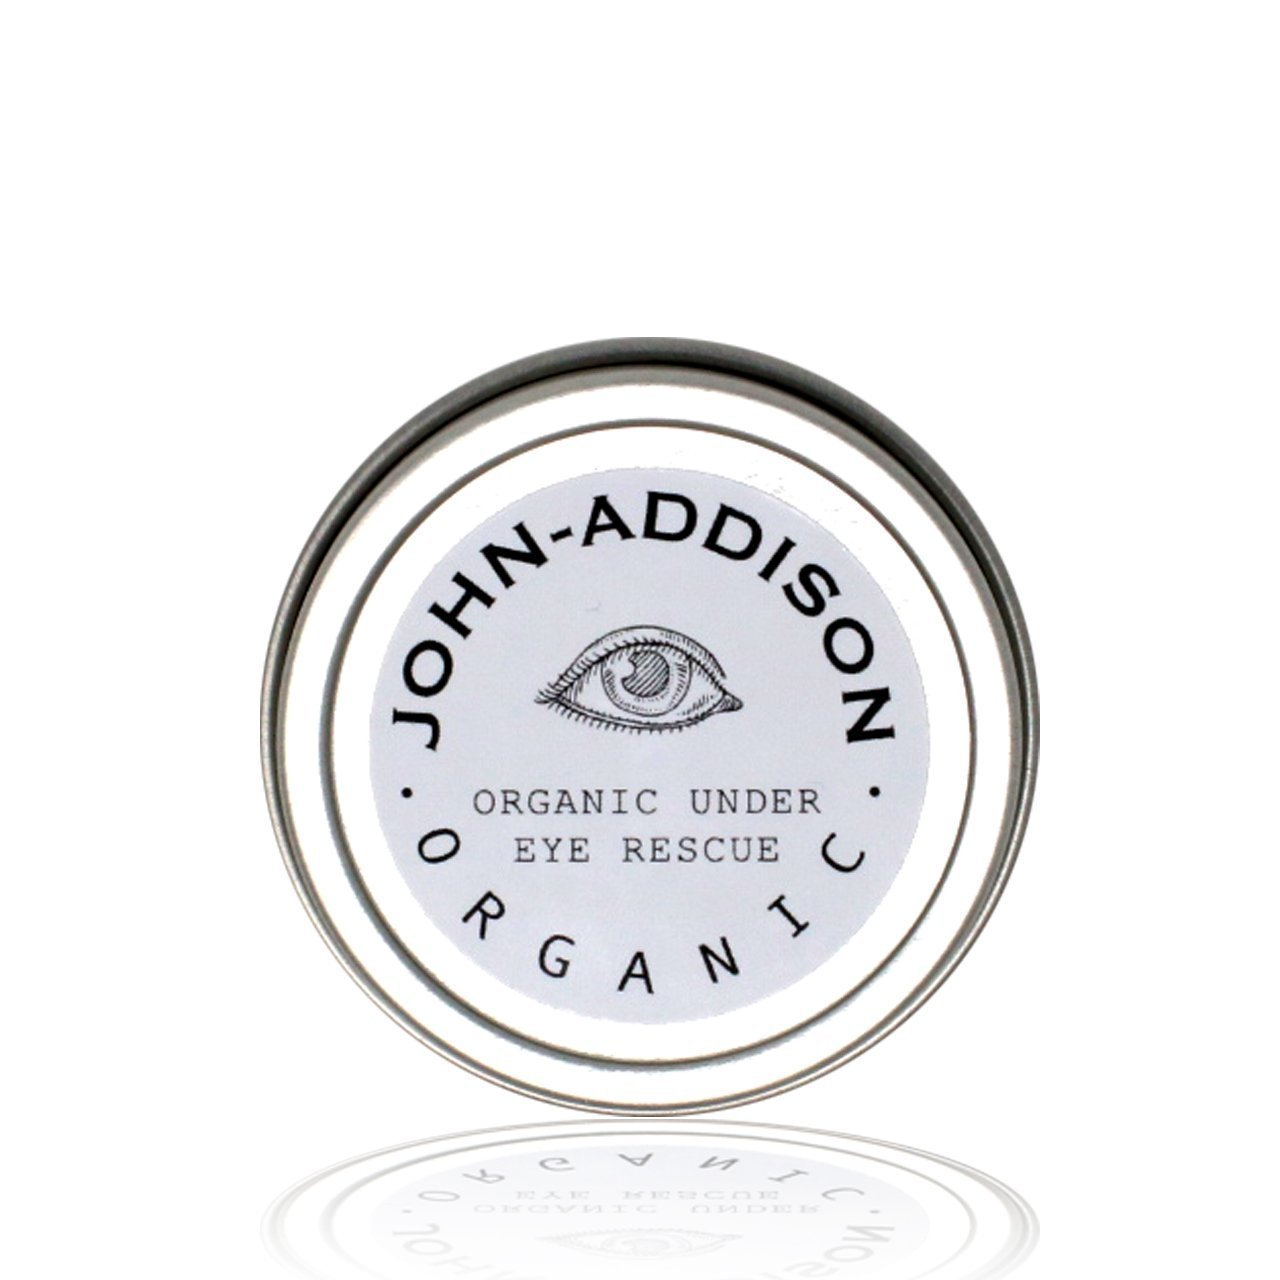 ORGANIC UNDER EYE RESCUE by JOHN ADDISON - Reduces Dark Circles Puffiness Fine Lines & Wrinkles - Helps Keep Skin Hydrated Reducing The Look Of Aging - Shea Butter - Coconut Oil - Olive Oil - Almond Oil - Chamomile - Bees Wax - 1oz tin